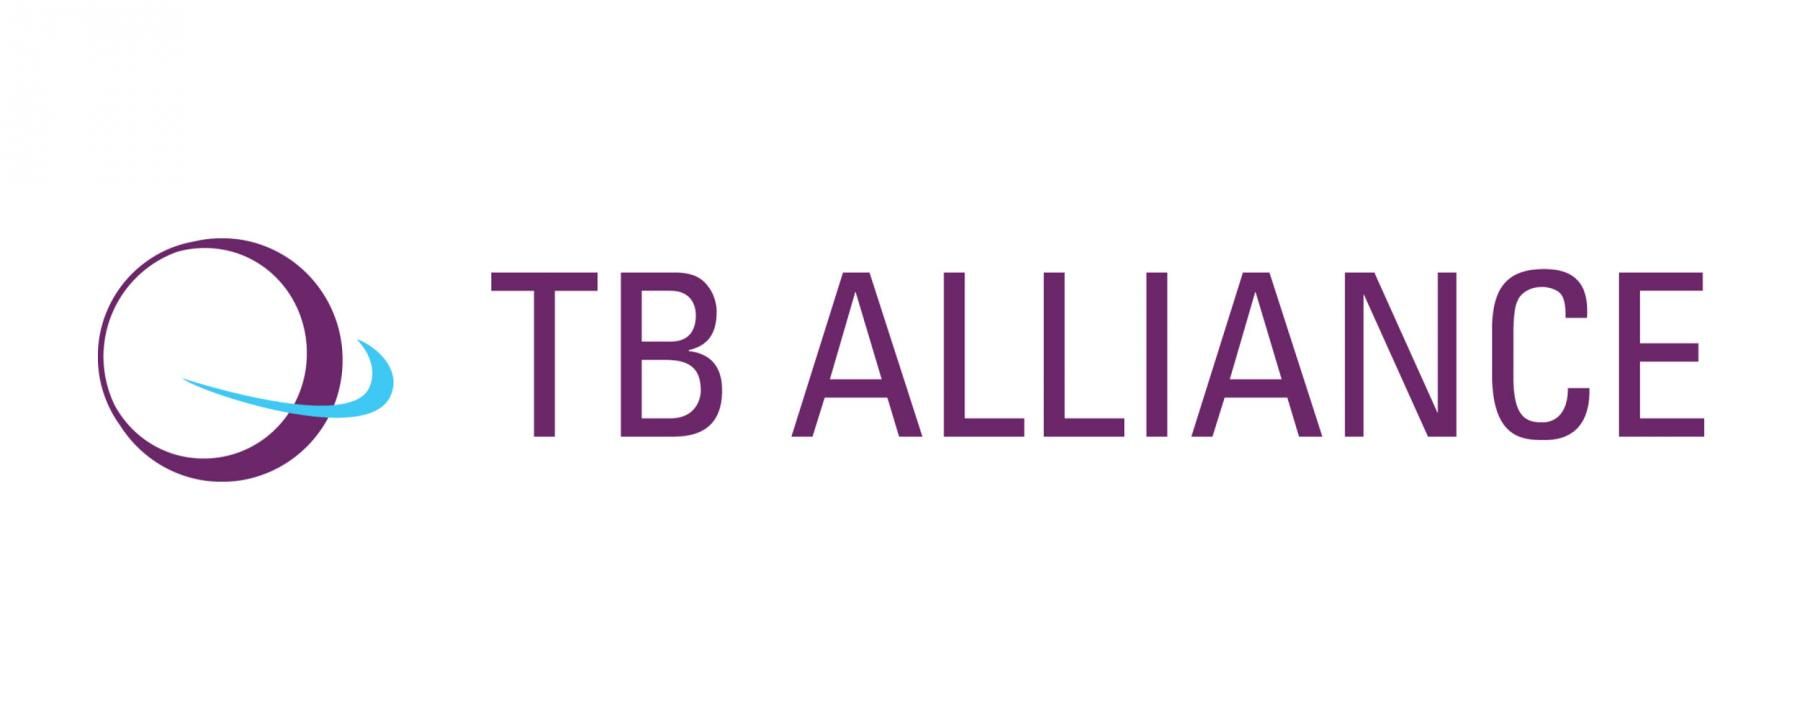 tb_alliance_logo_2500